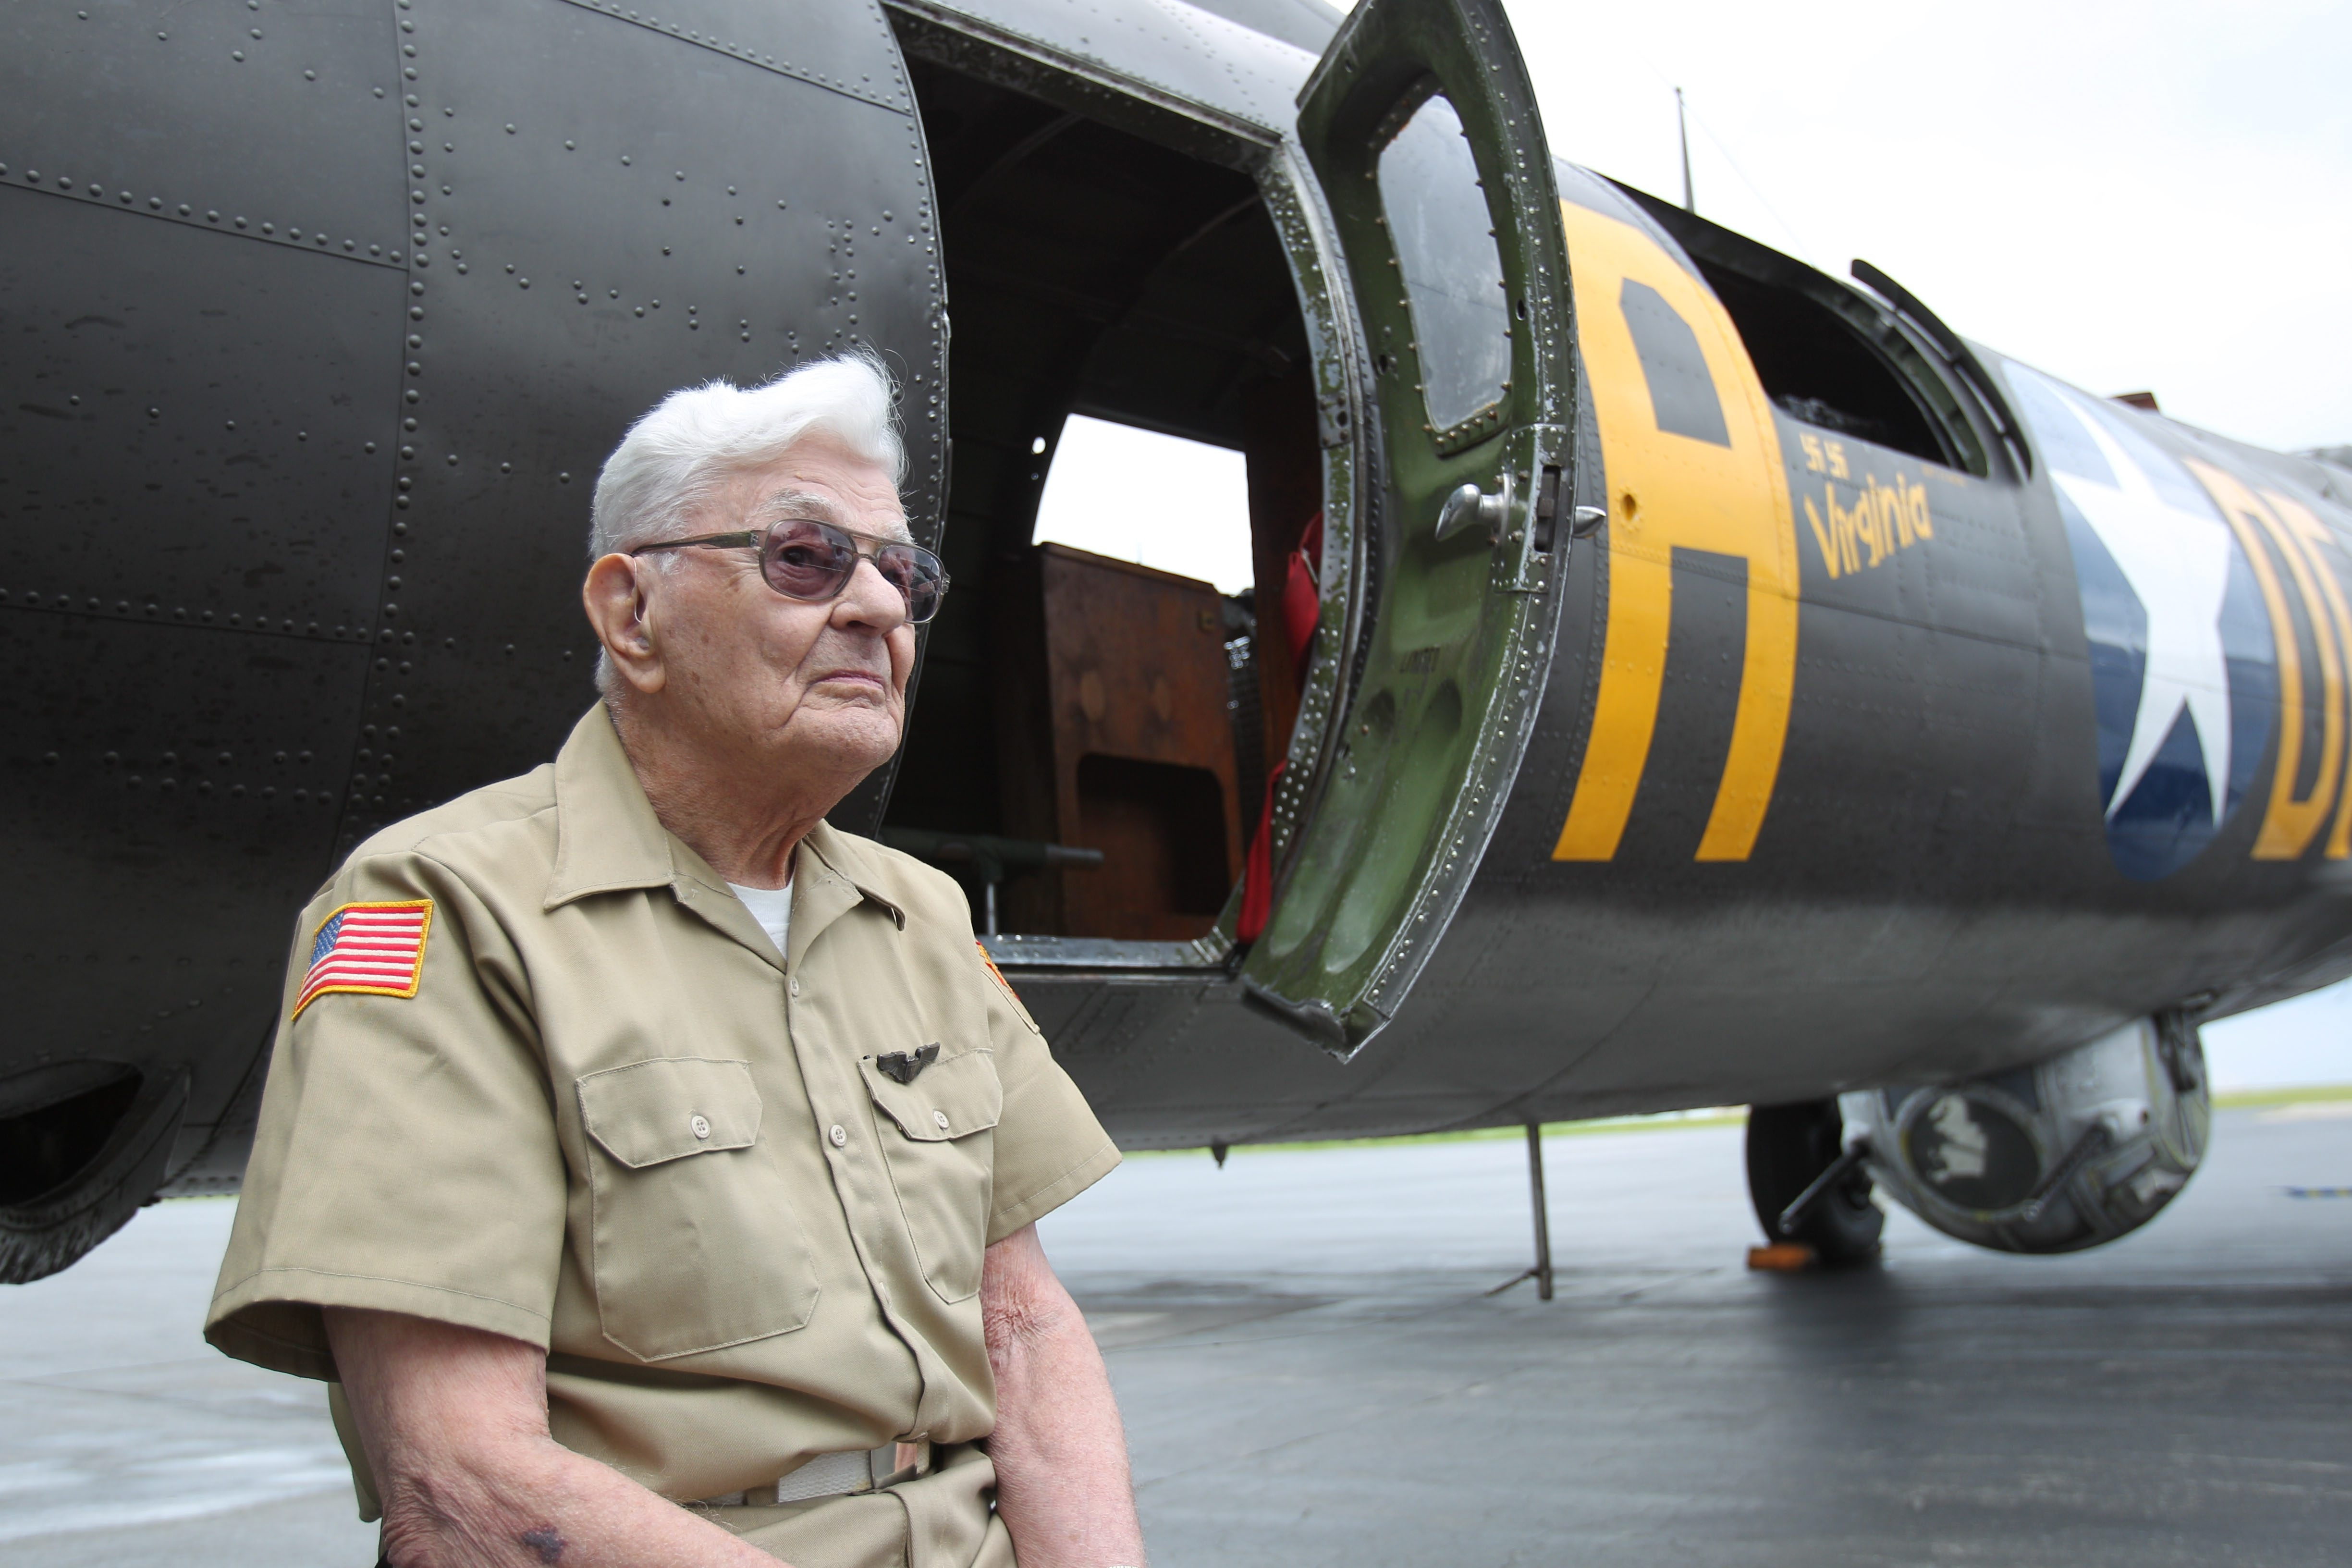 World War II veteran Richard J. Notebaert, who served as a captain in the Army Air Forces, reflects on his dozens of daring missions over Europe as he takes his turn for a first-ever ride as a peacetime passenger aboard a B-17, the Liberty Foundation's Memphis Belle. Rides on the plane are being offered at Prior Aviation as part of a Salute to Veterans tour. See a photo gallery at BuffaloNews.com.